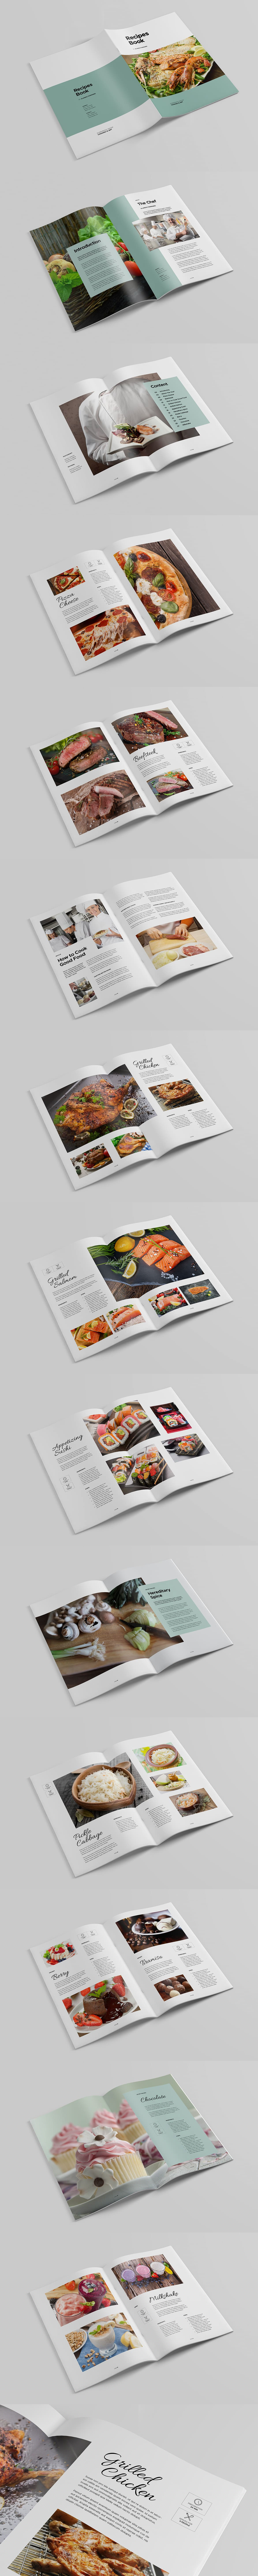 Cook Book Template InDesign INDD - 28 Custom Pages, A4 & Letter ...